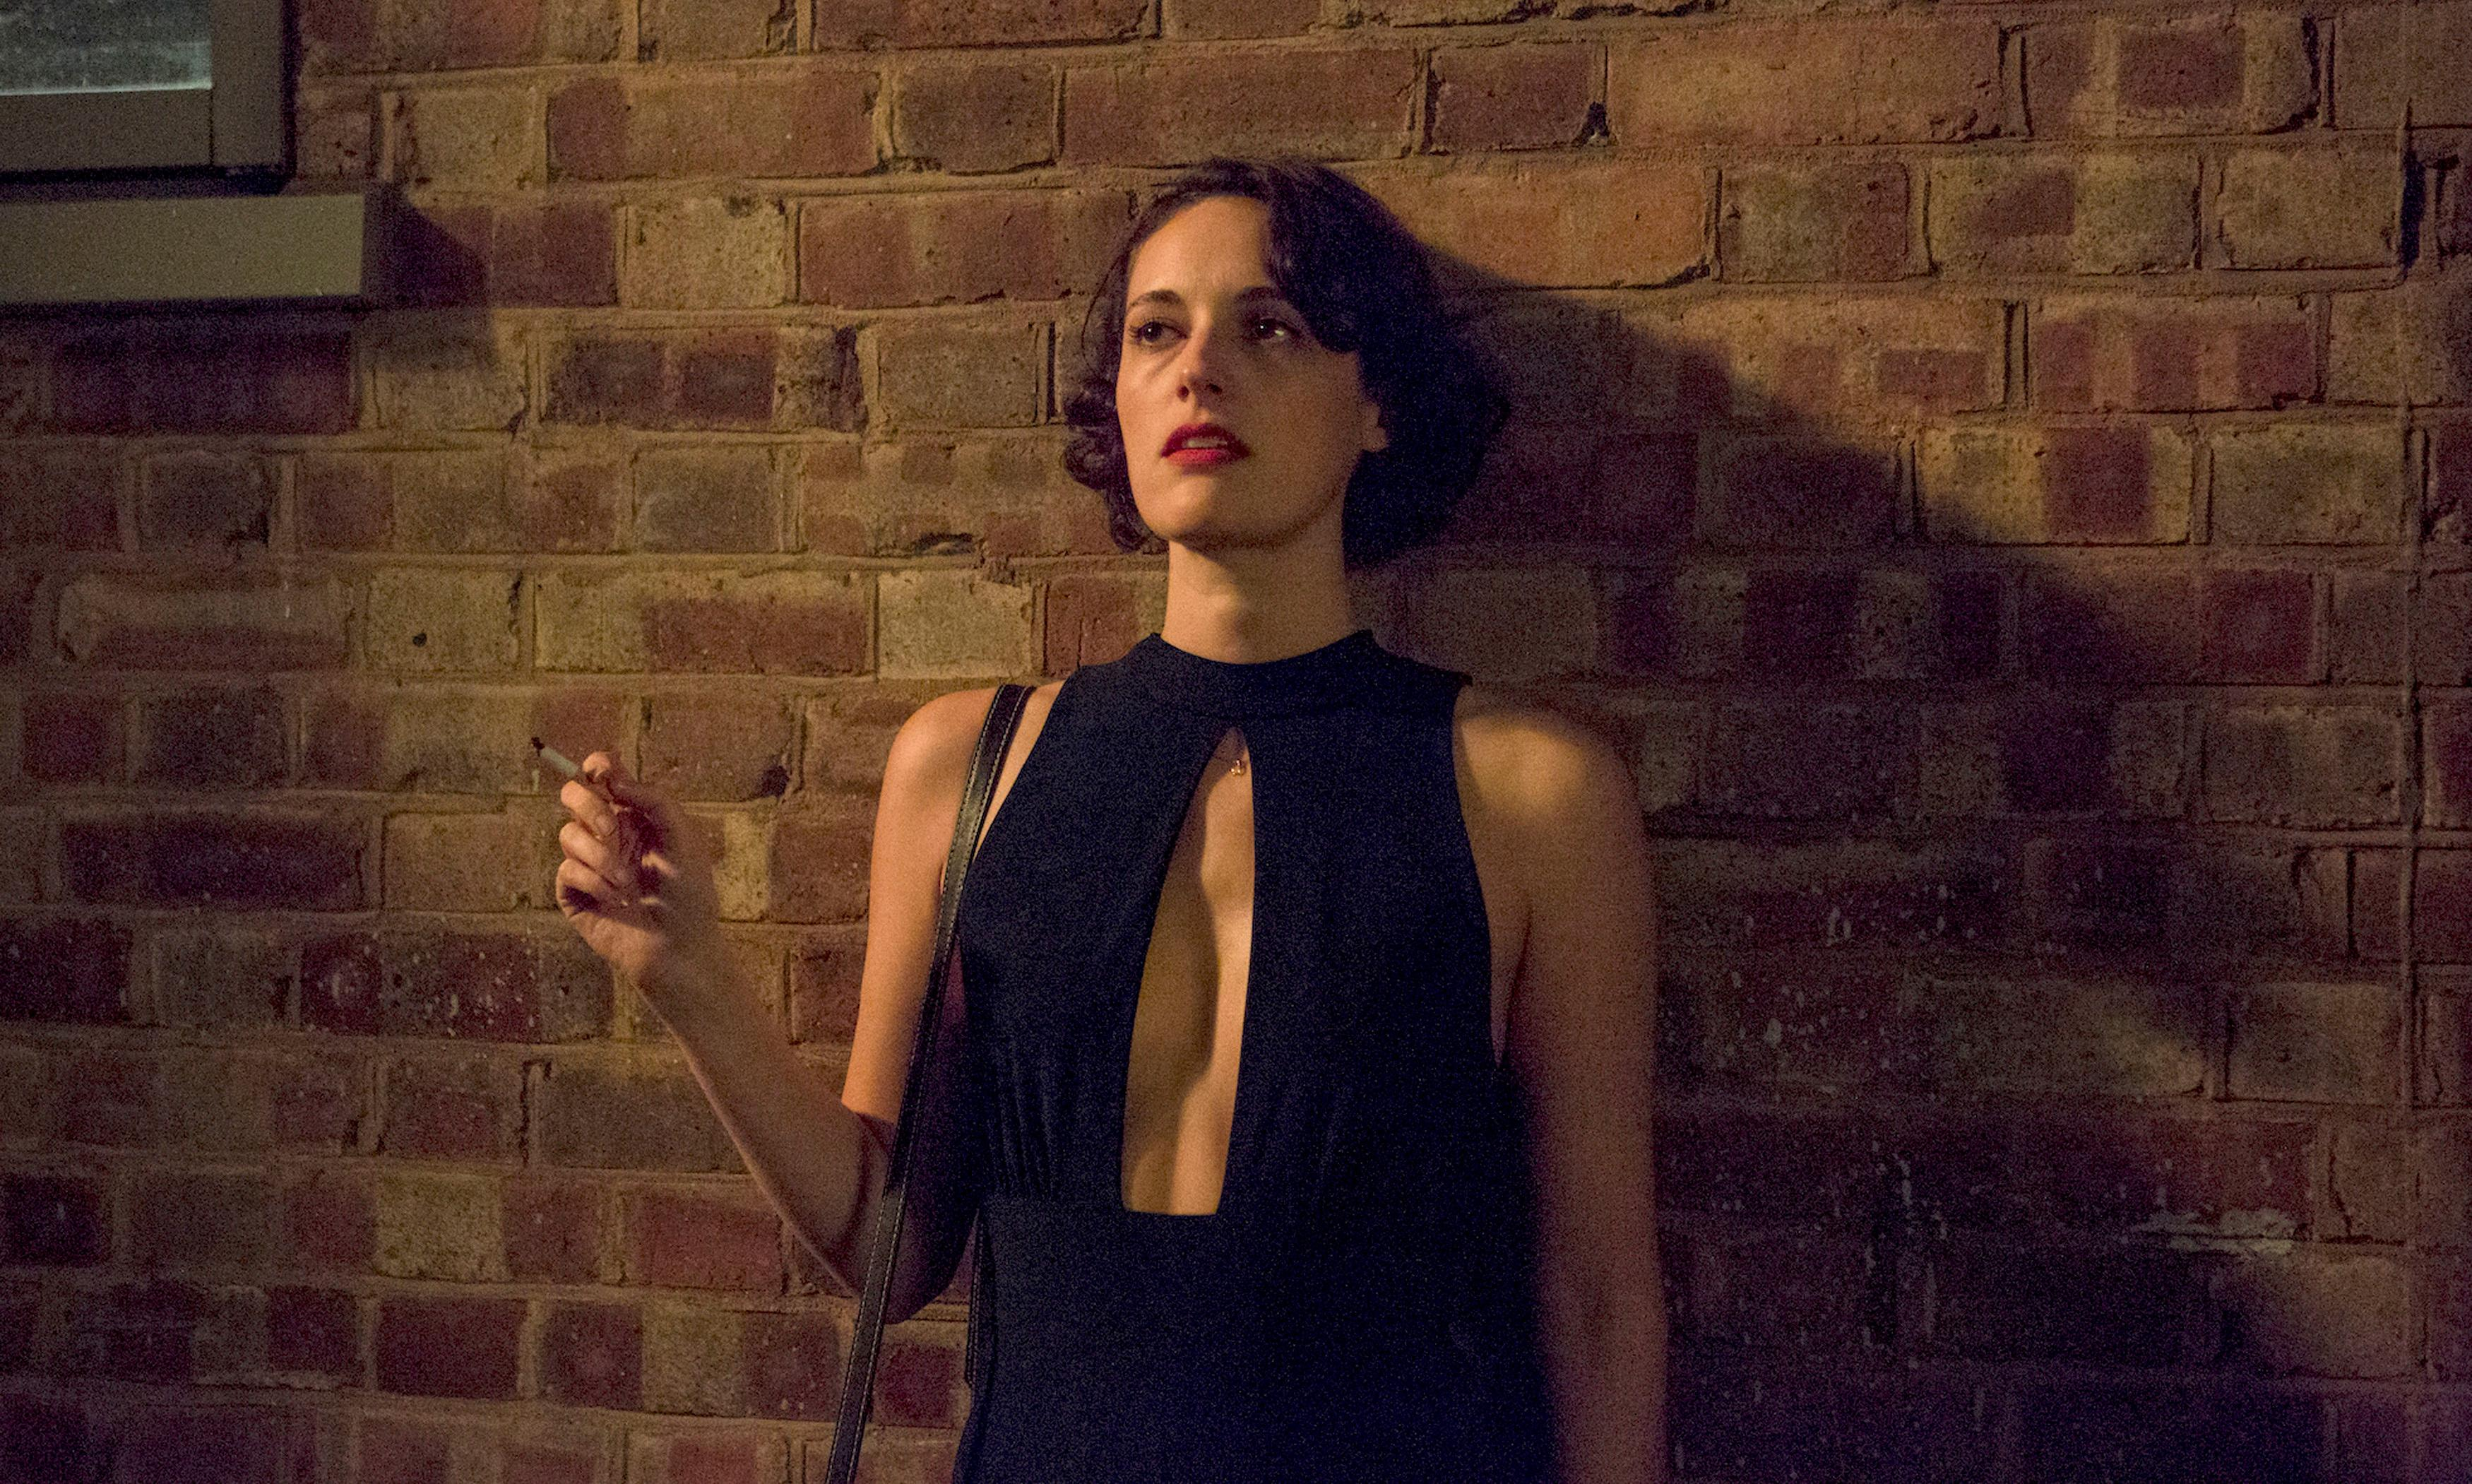 Fleabag dressing: how the Phoebe Waller-Bridge character became a style inspiration